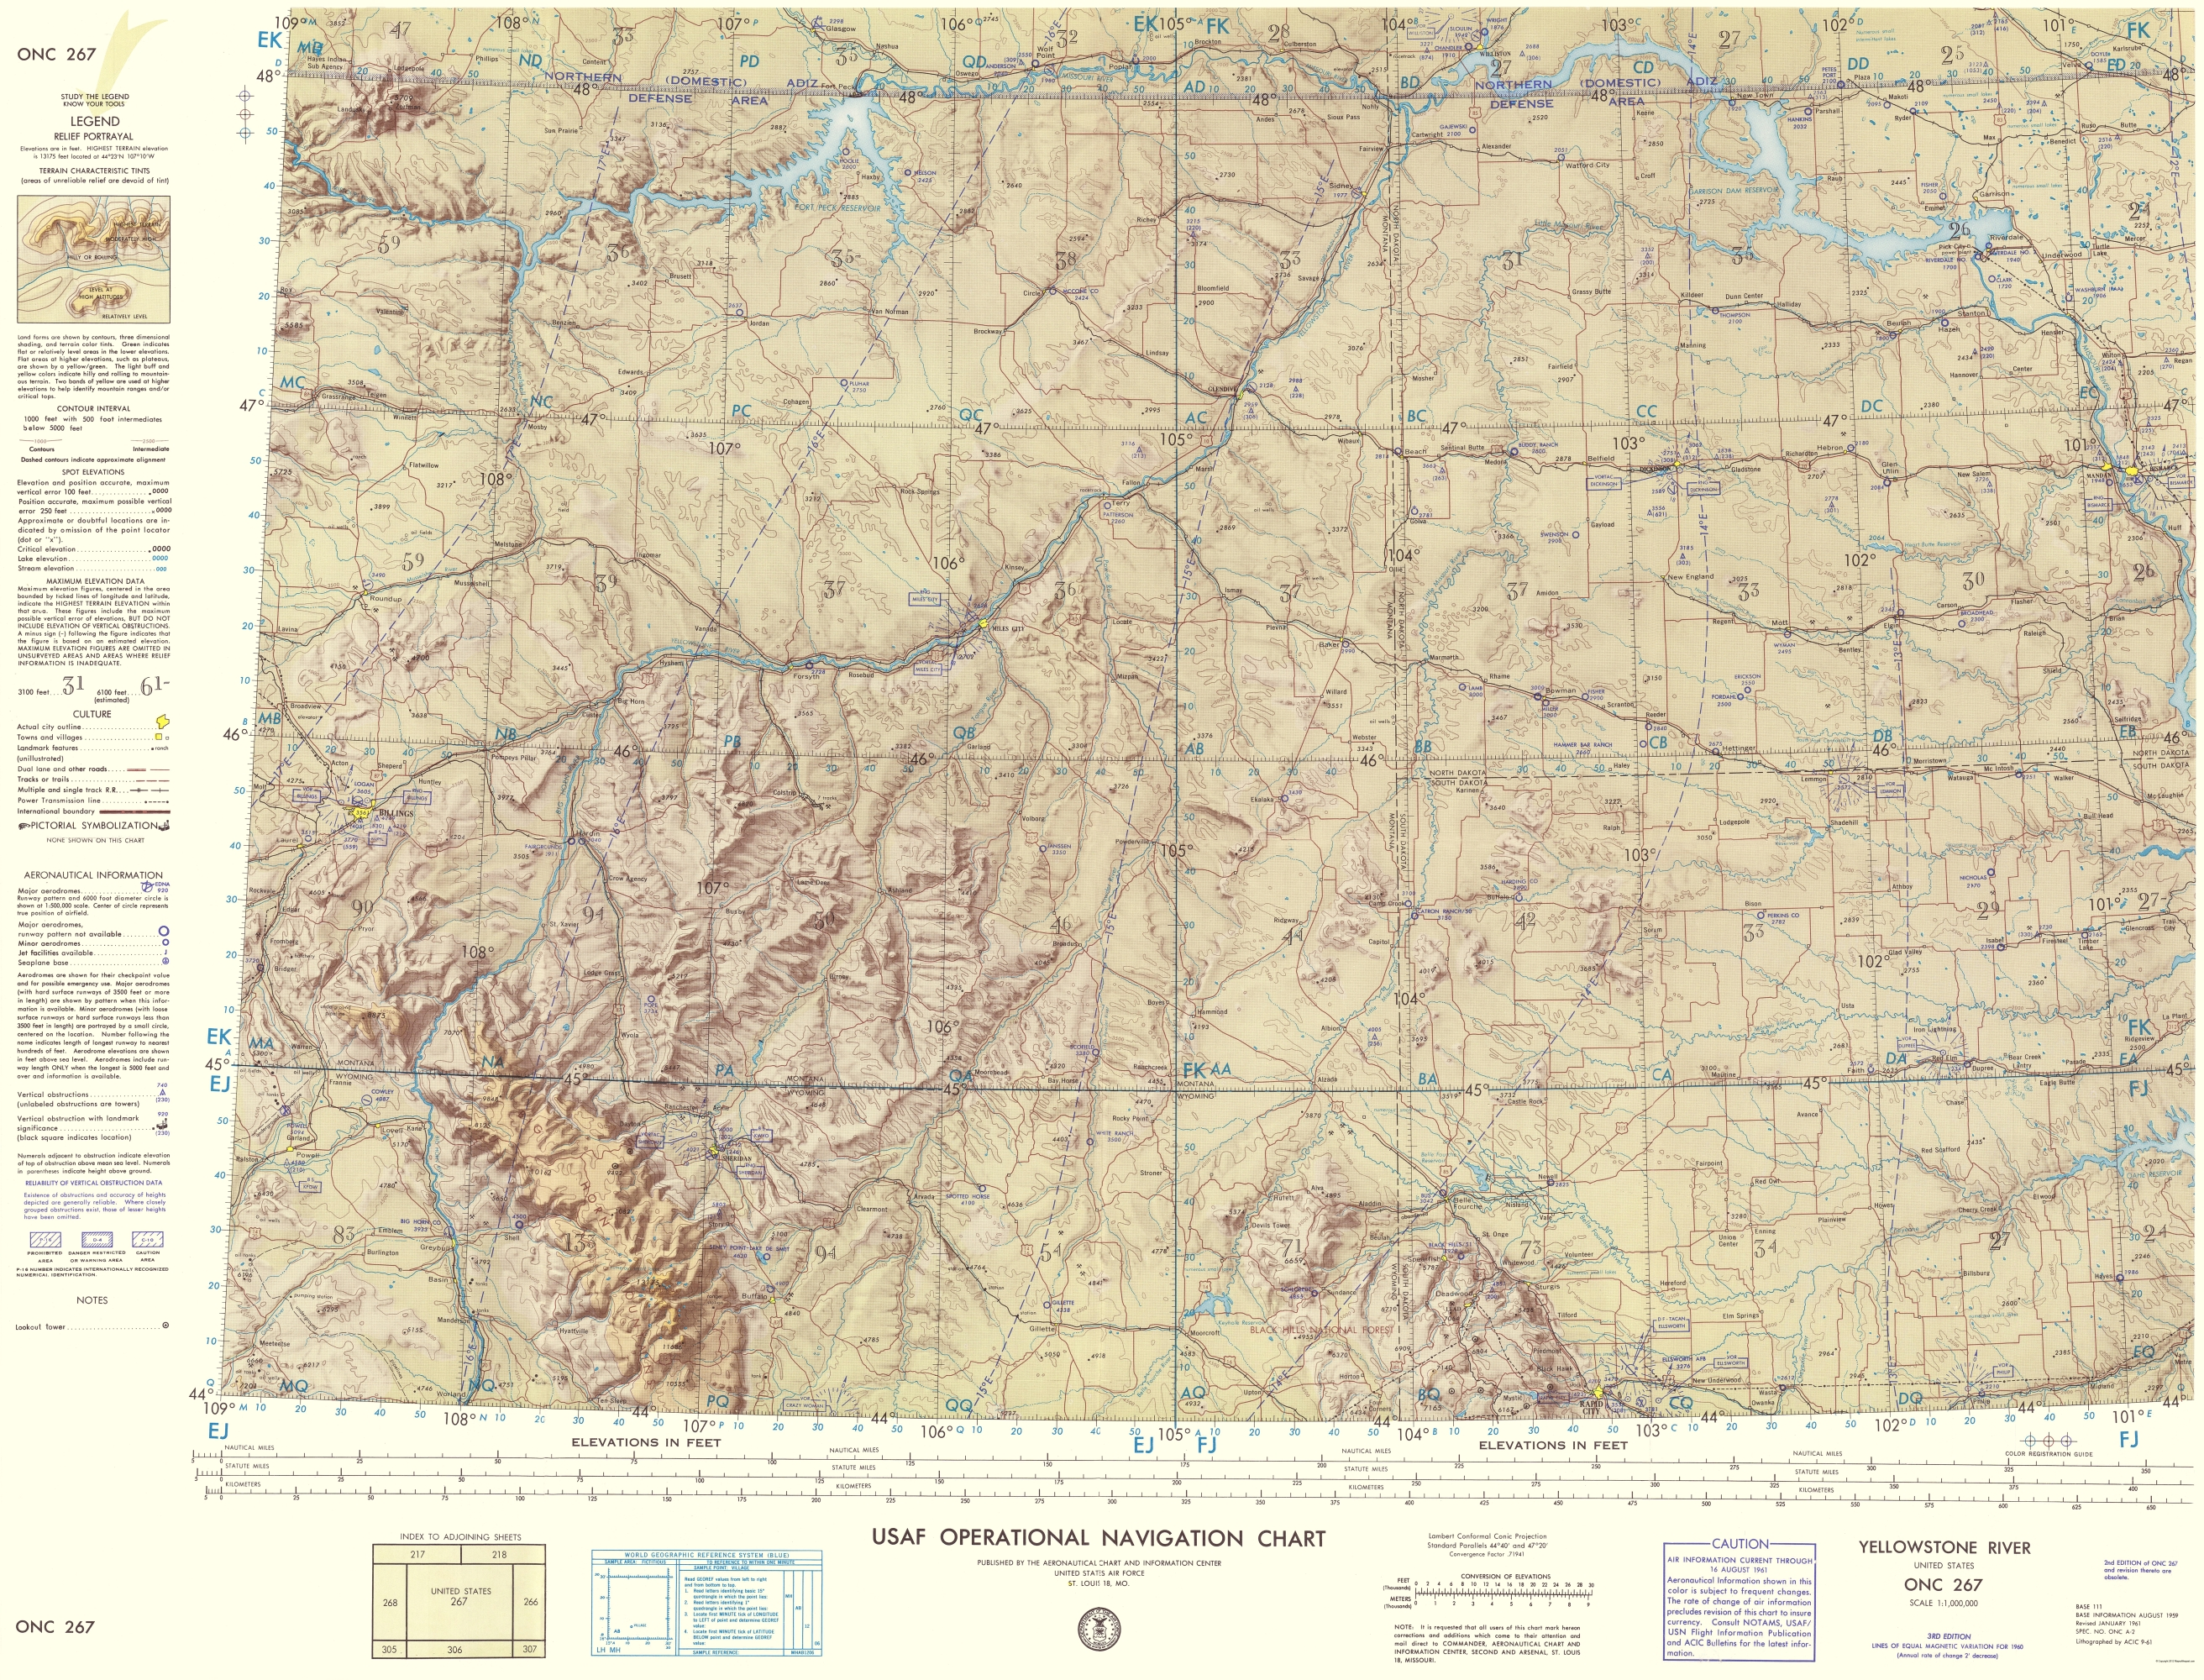 Topographic Map Of Yellowstone.Topographical Map Yellowstone River 1961